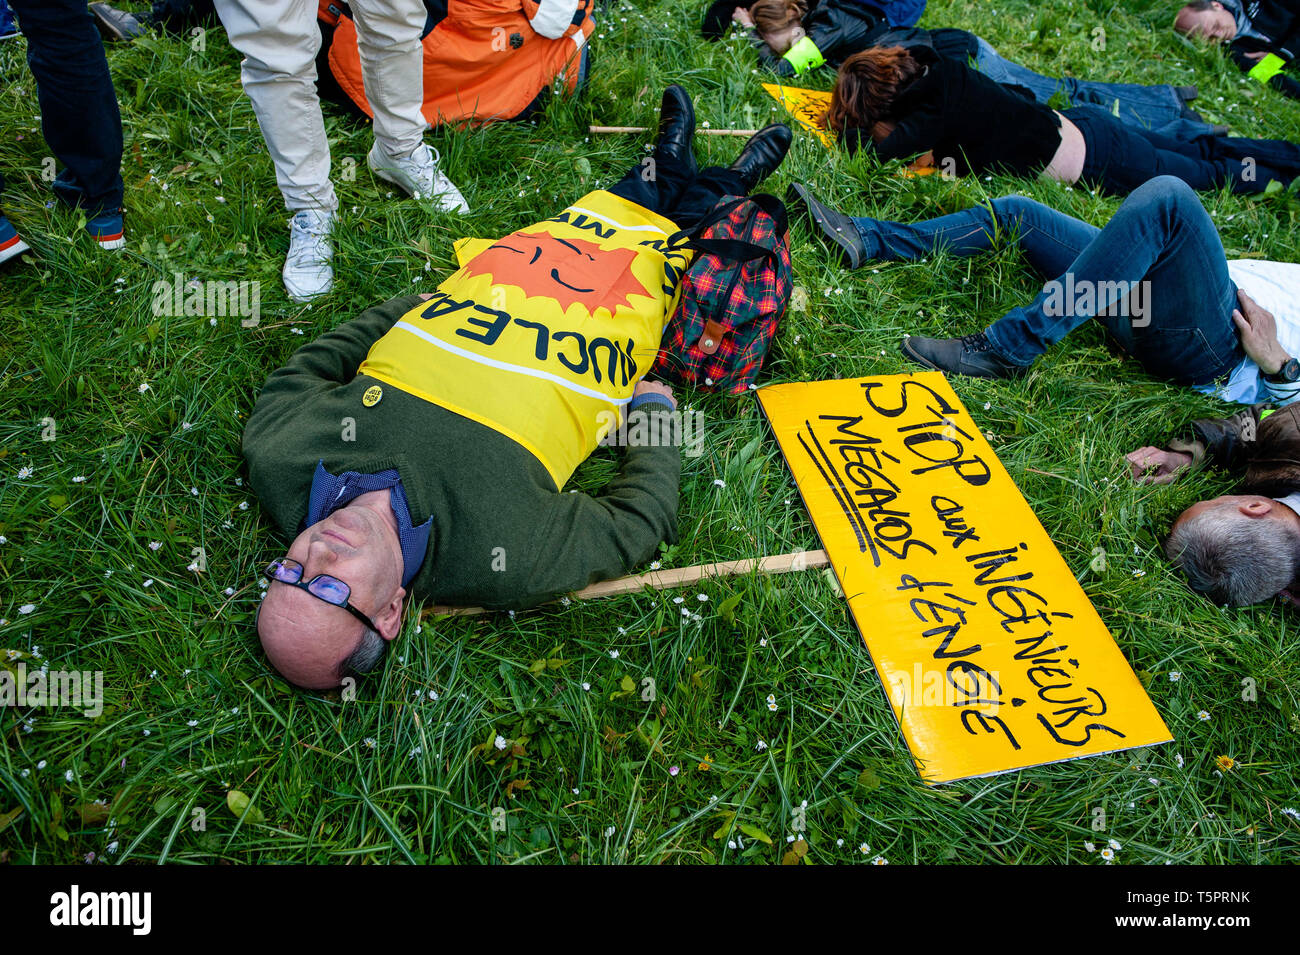 """April 26, 2019 - Brussels, North Brabant, Belgium - Some activists are seen laying dead in front of Engie HQ during the protest..On the day that commemorates the 33rd anniversary of the Chernobyl nuclear disaster, a protest was organized by the """"Fin du nucléaire"""" and Réveil Anti-Nucléaire"""" associations, as well as director Bouli Lanners. They want the five most dangerous Belgian reactors to be shut down. (Credit Image: © Ana Fernandez/SOPA Images via ZUMA Wire) - Stock Image"""